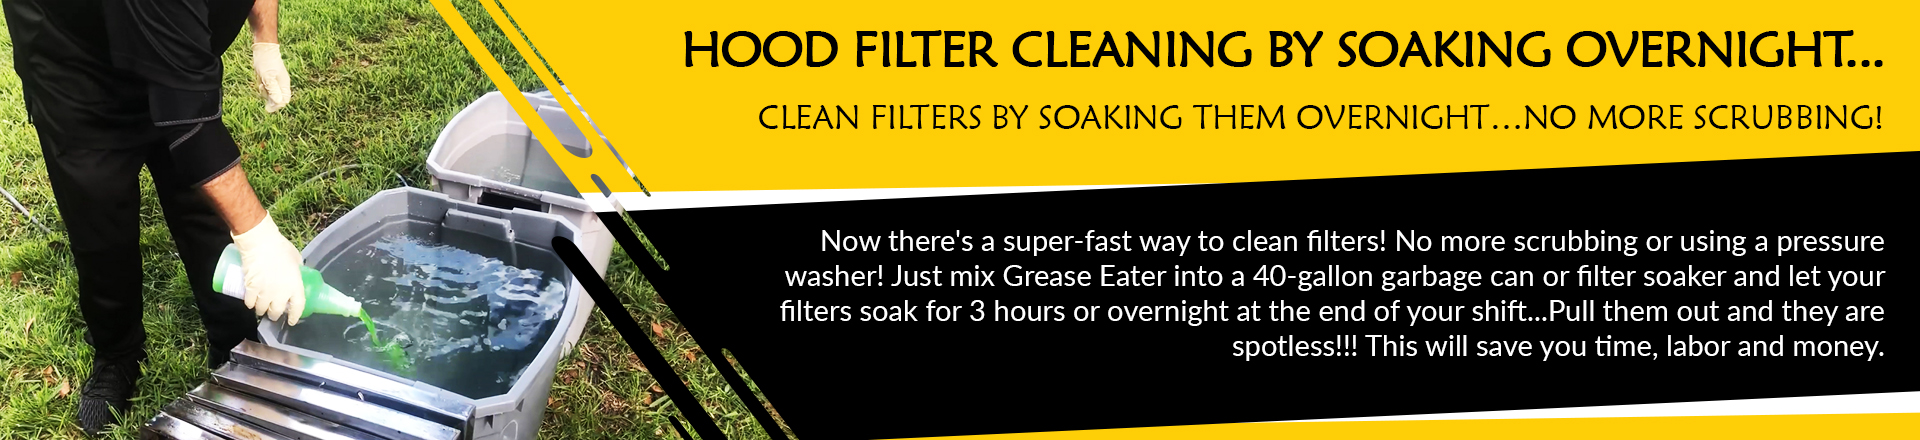 Clean Filters By Soaking